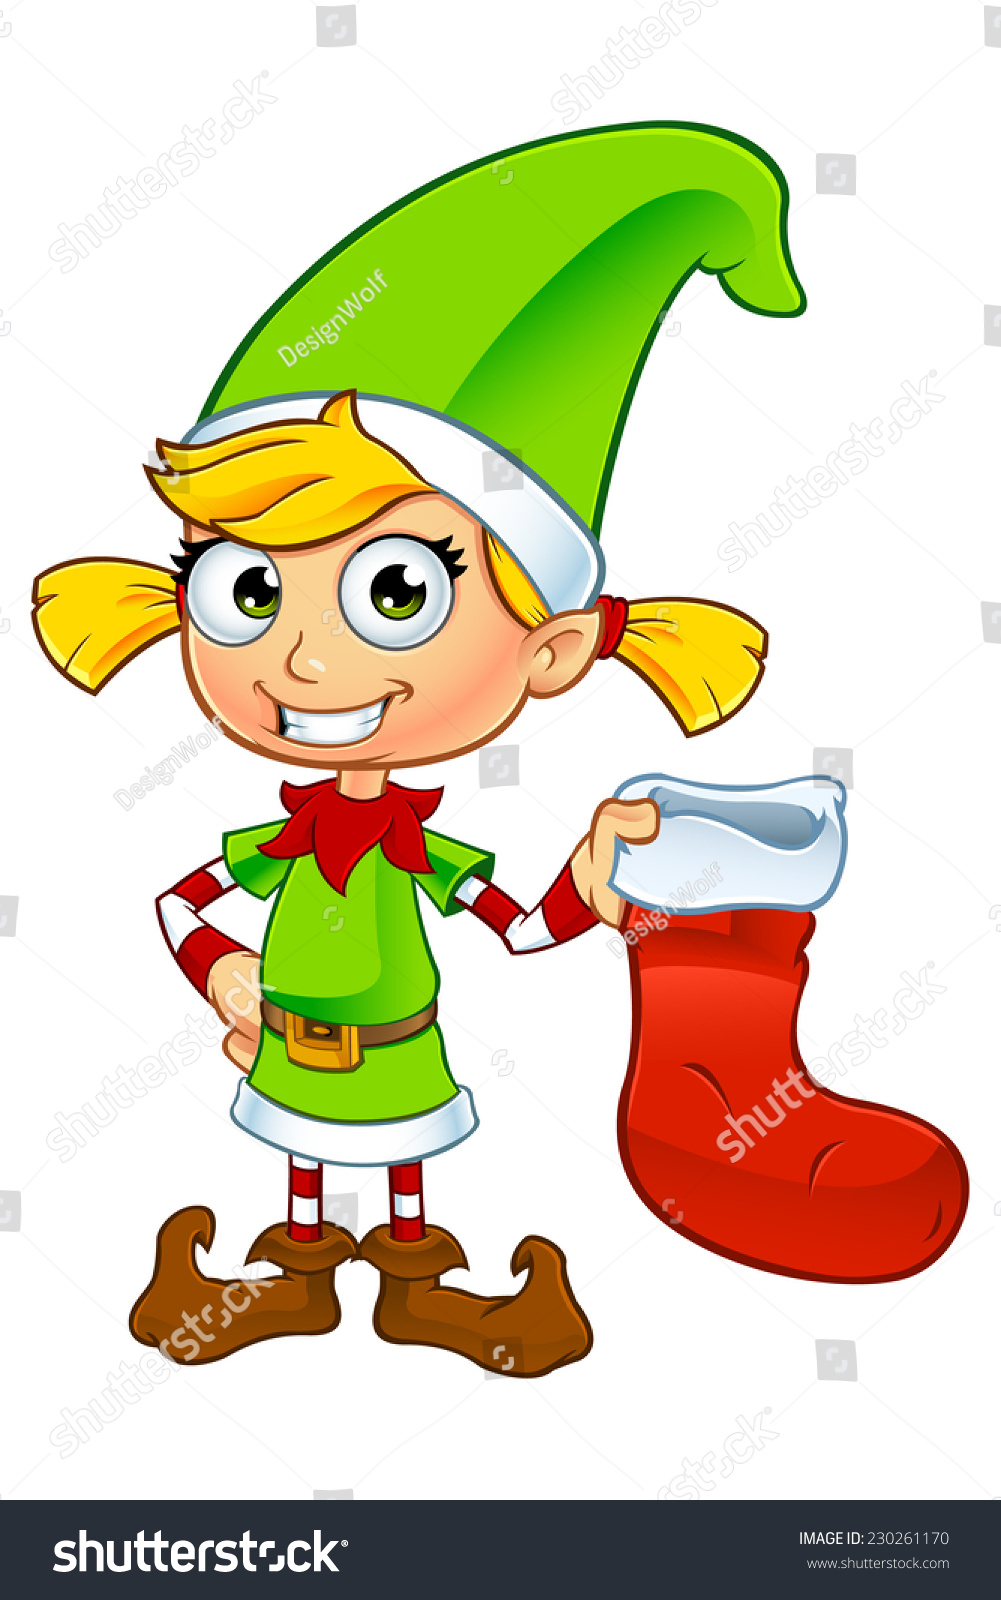 Images green elf girl in green dress  pornos picture